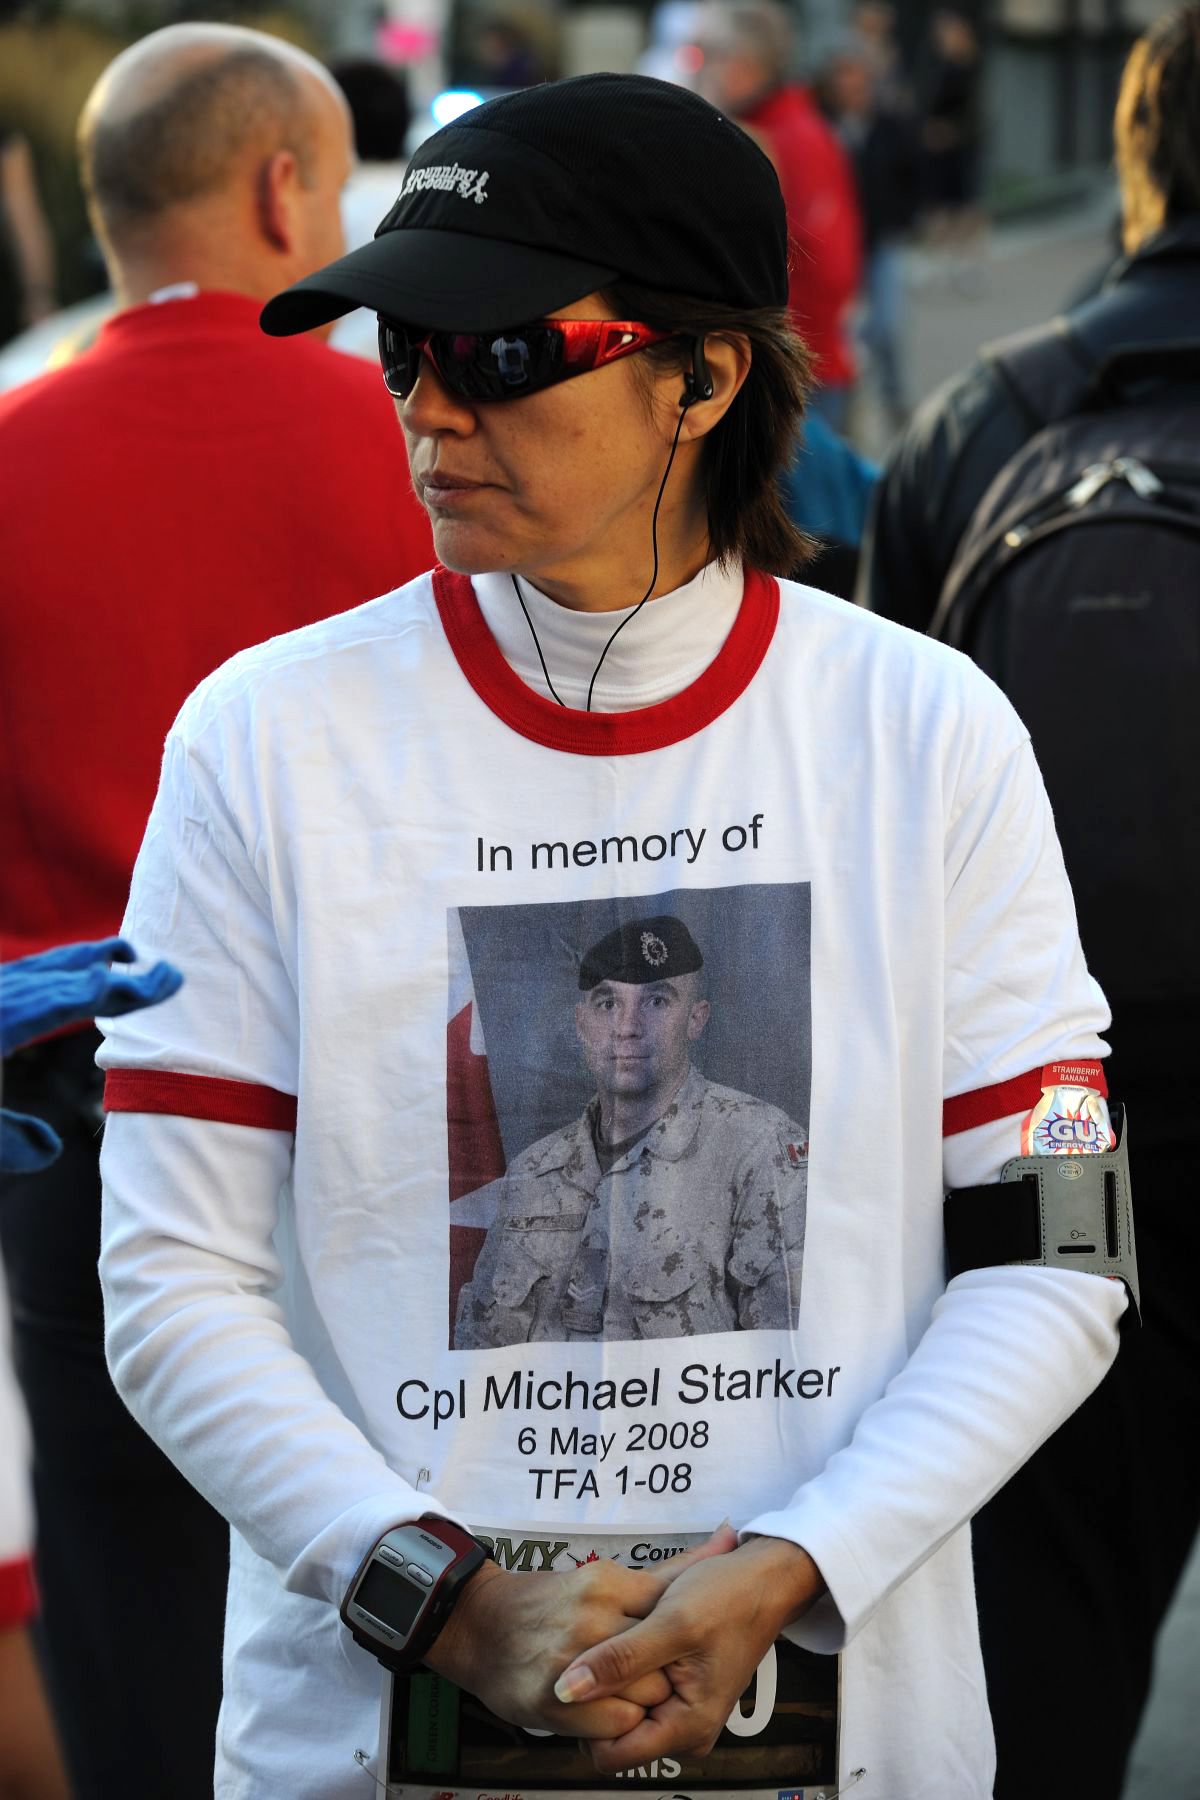 Some participants were running in memory of a significant other who lost his life in Afghanistan.